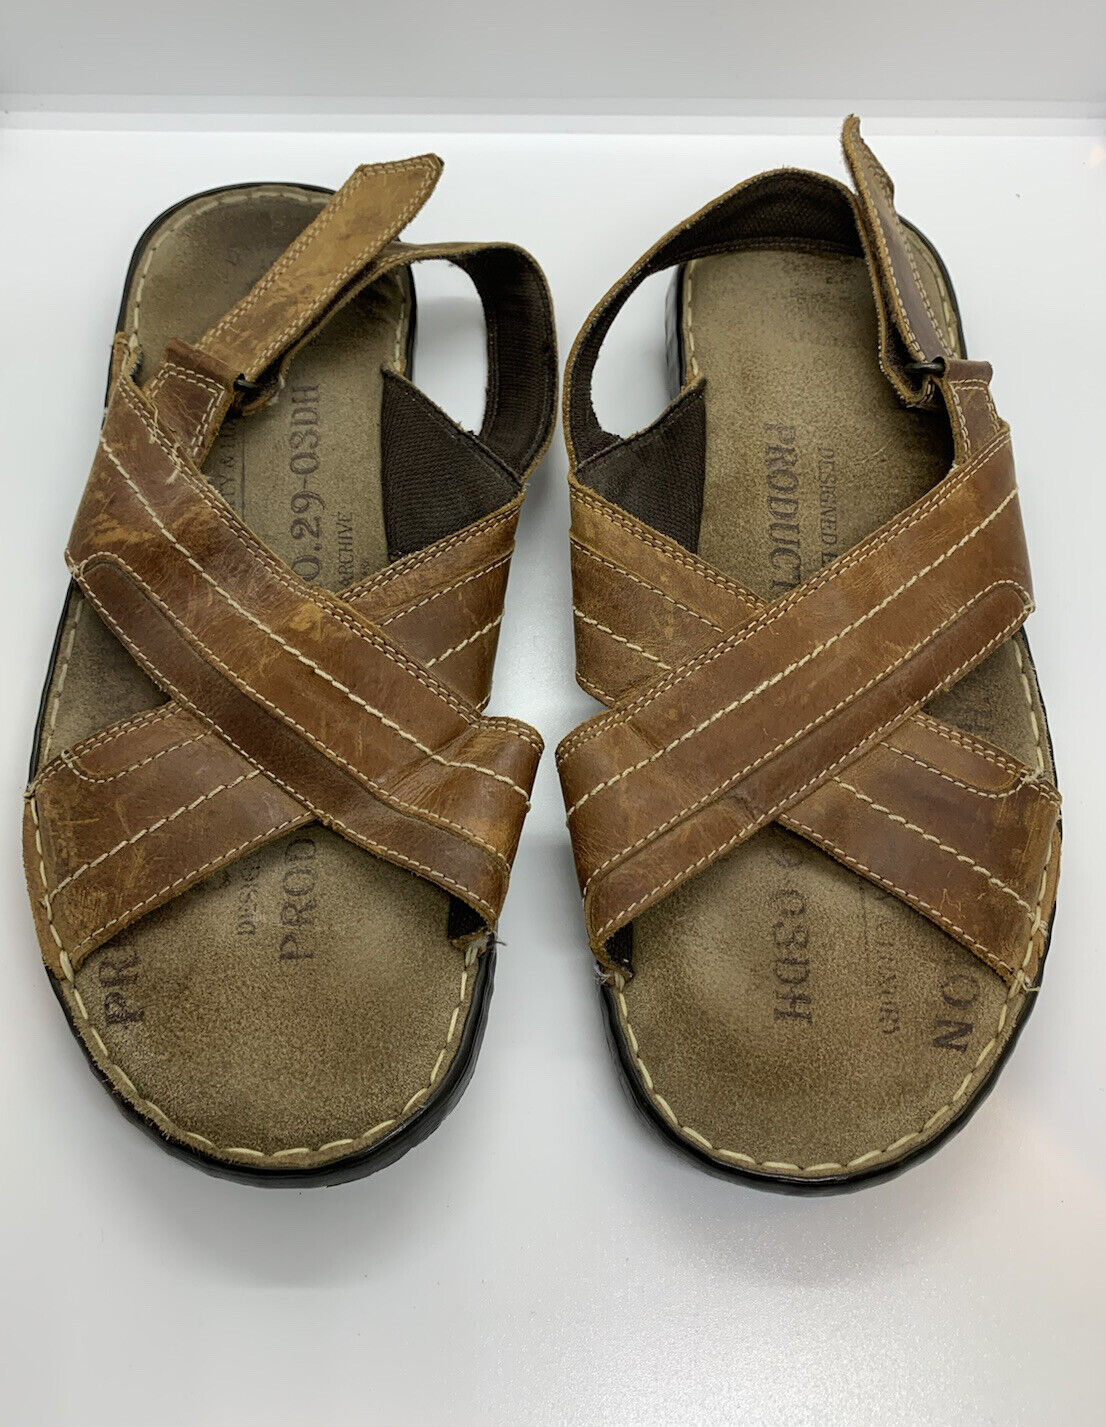 Easy Brown Leather Premium Leather Comfort Cushioned Inners Sandals Size 9